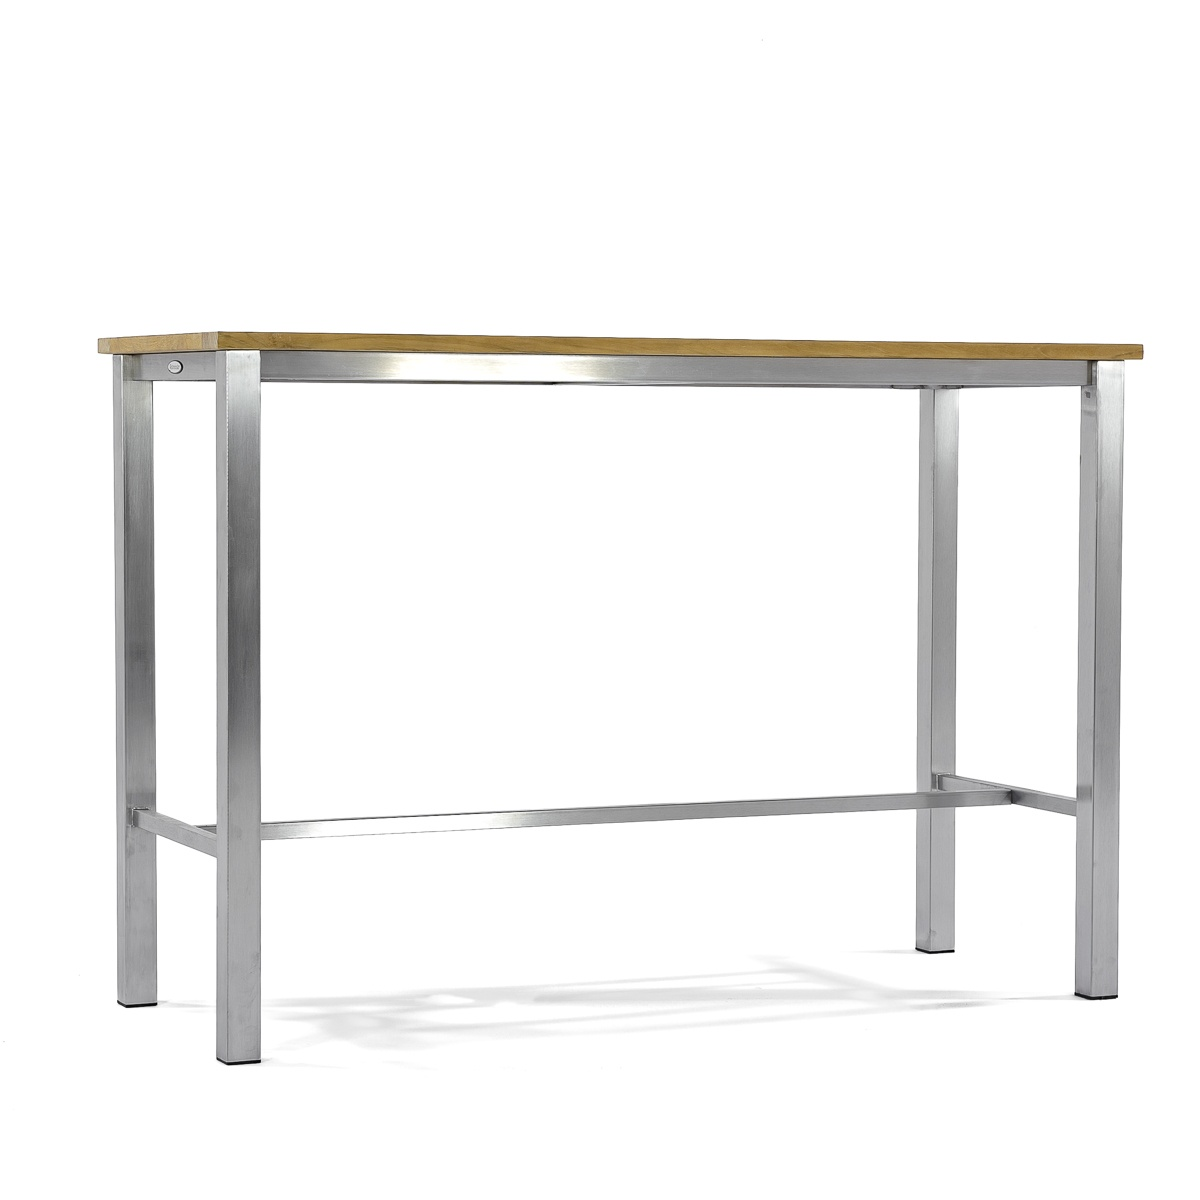 Vogue teak and stainless steel rectangular patio b for 5 foot console table